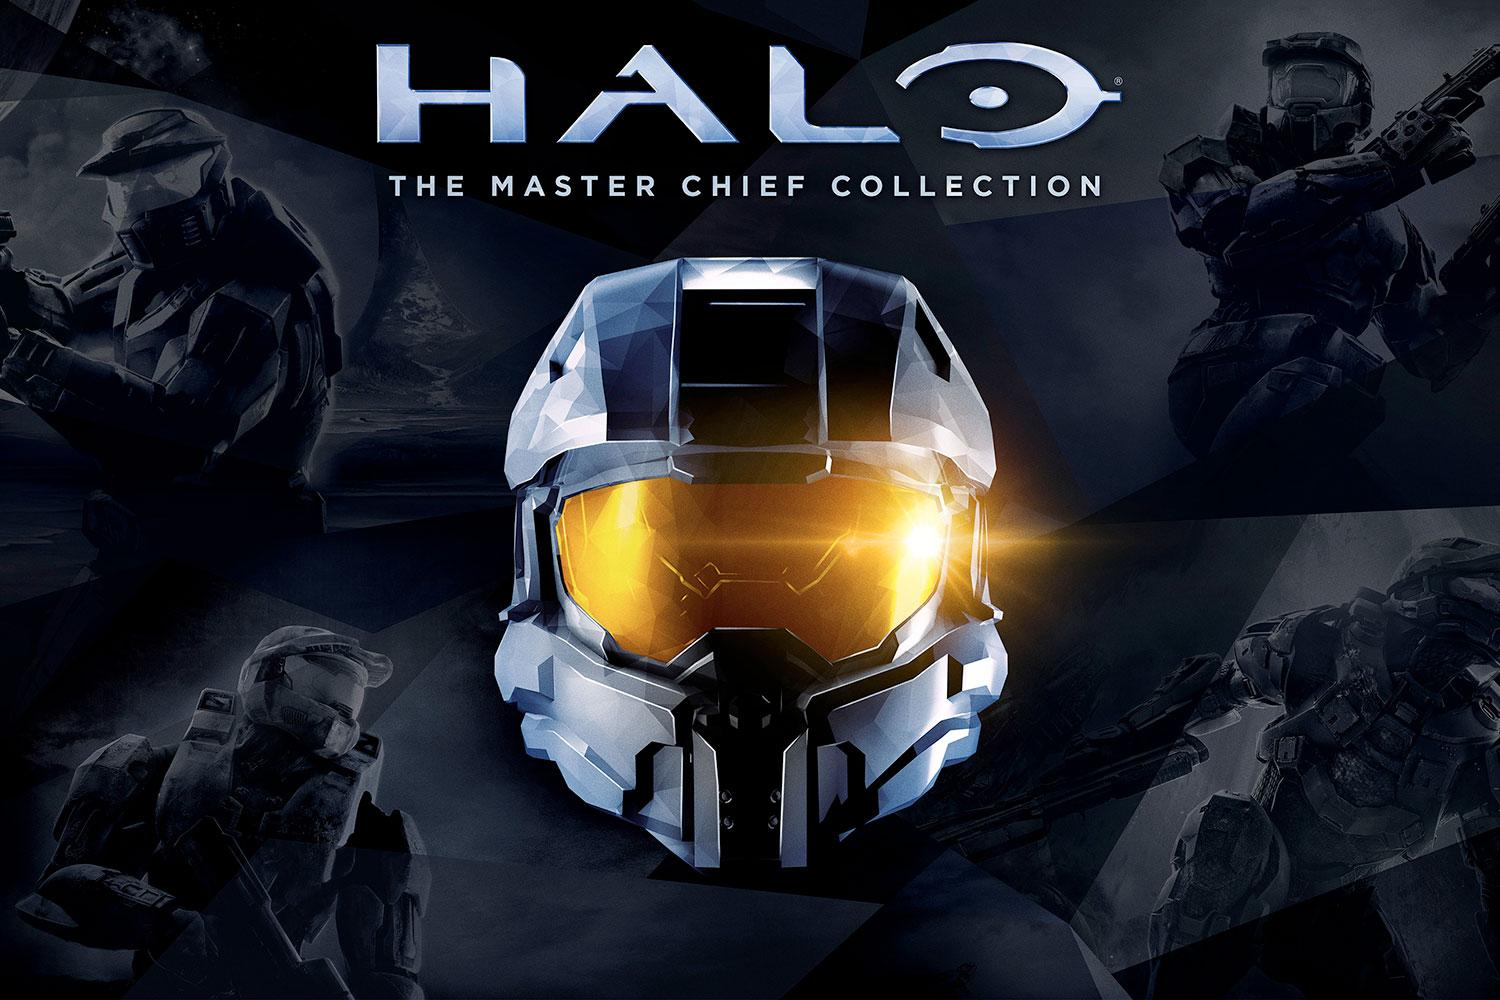 file_8422_Halo-The-Master-Chief-Collection